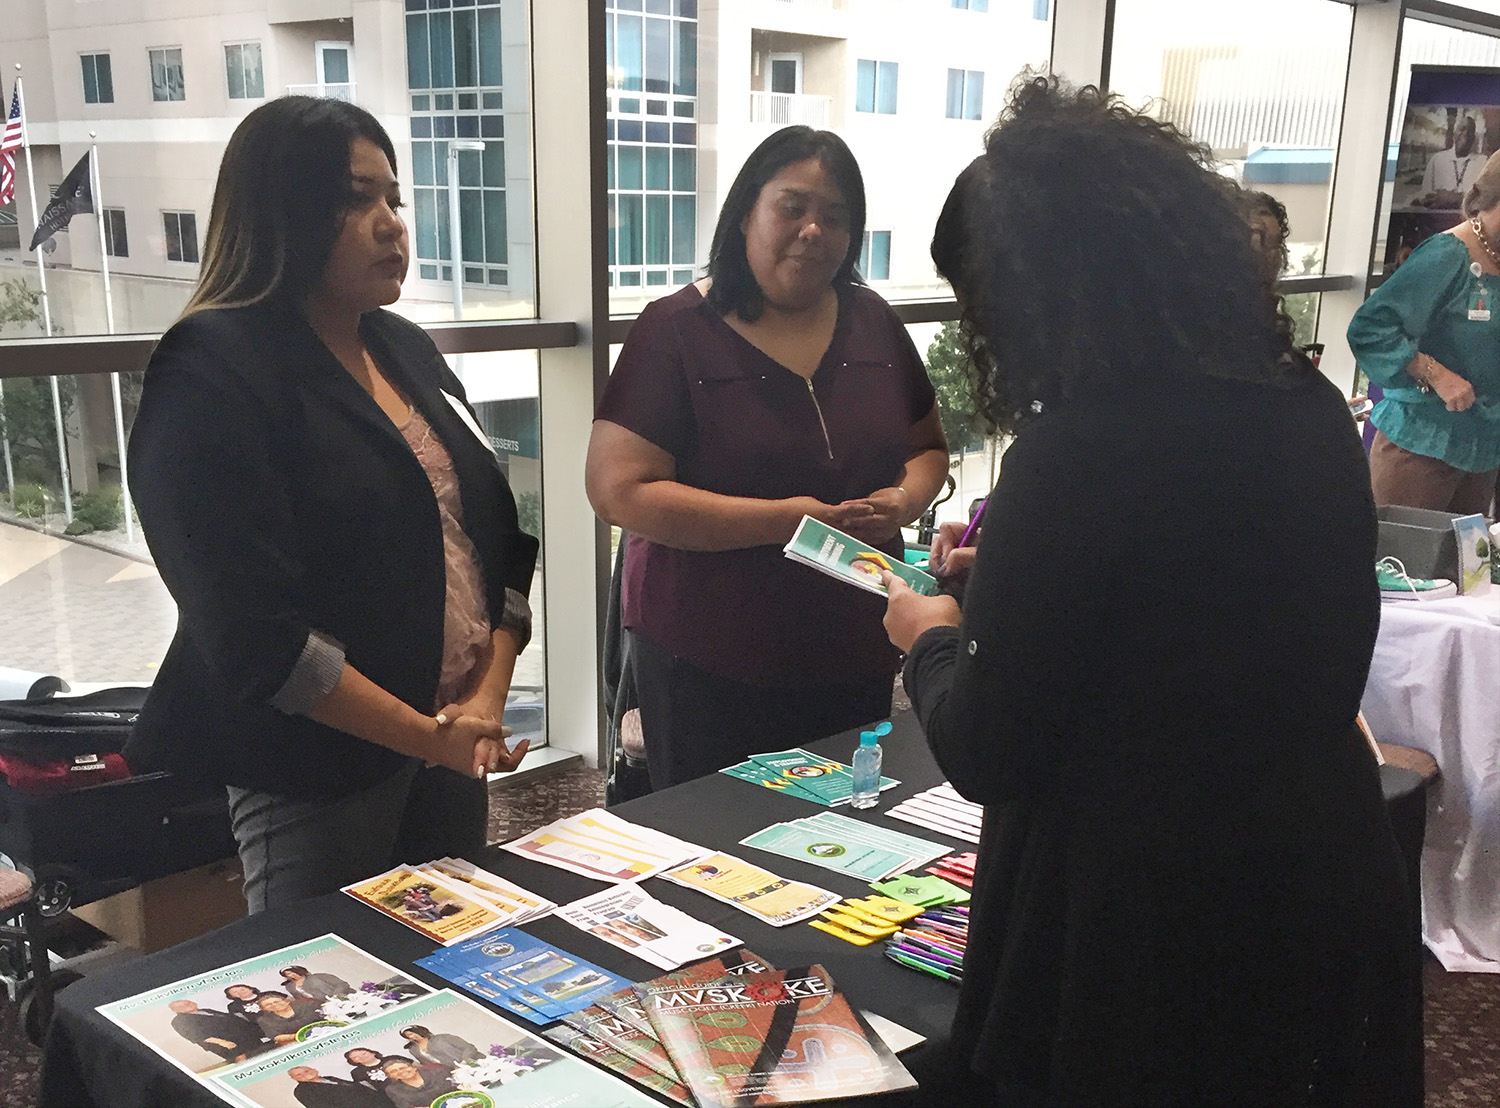 MCN Principal Chief speaks, shows support during trauma-informed instruction summit